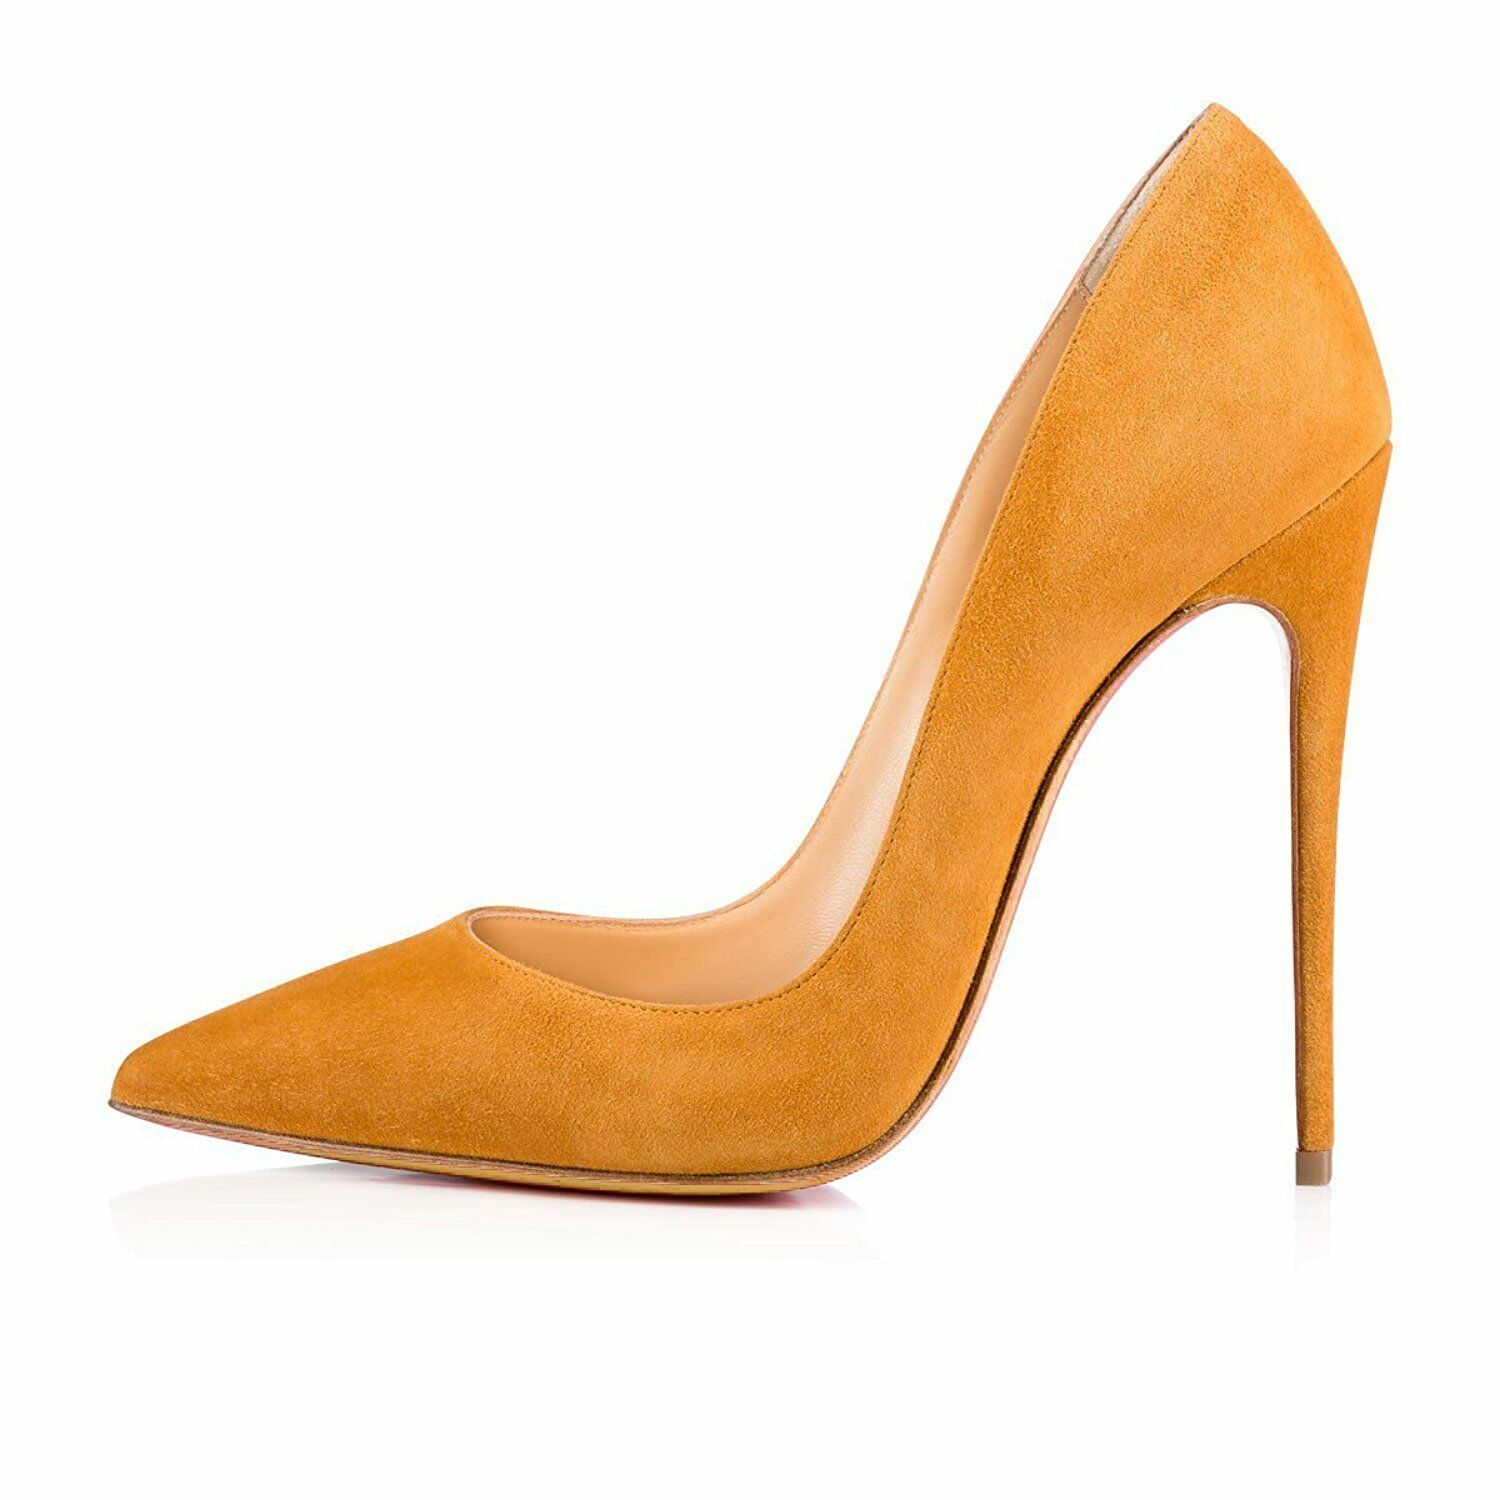 Women's Pointed Toe Court shoes shoes shoes Elegant Suede Slip On Stilettos Pumps Big Size 48807a